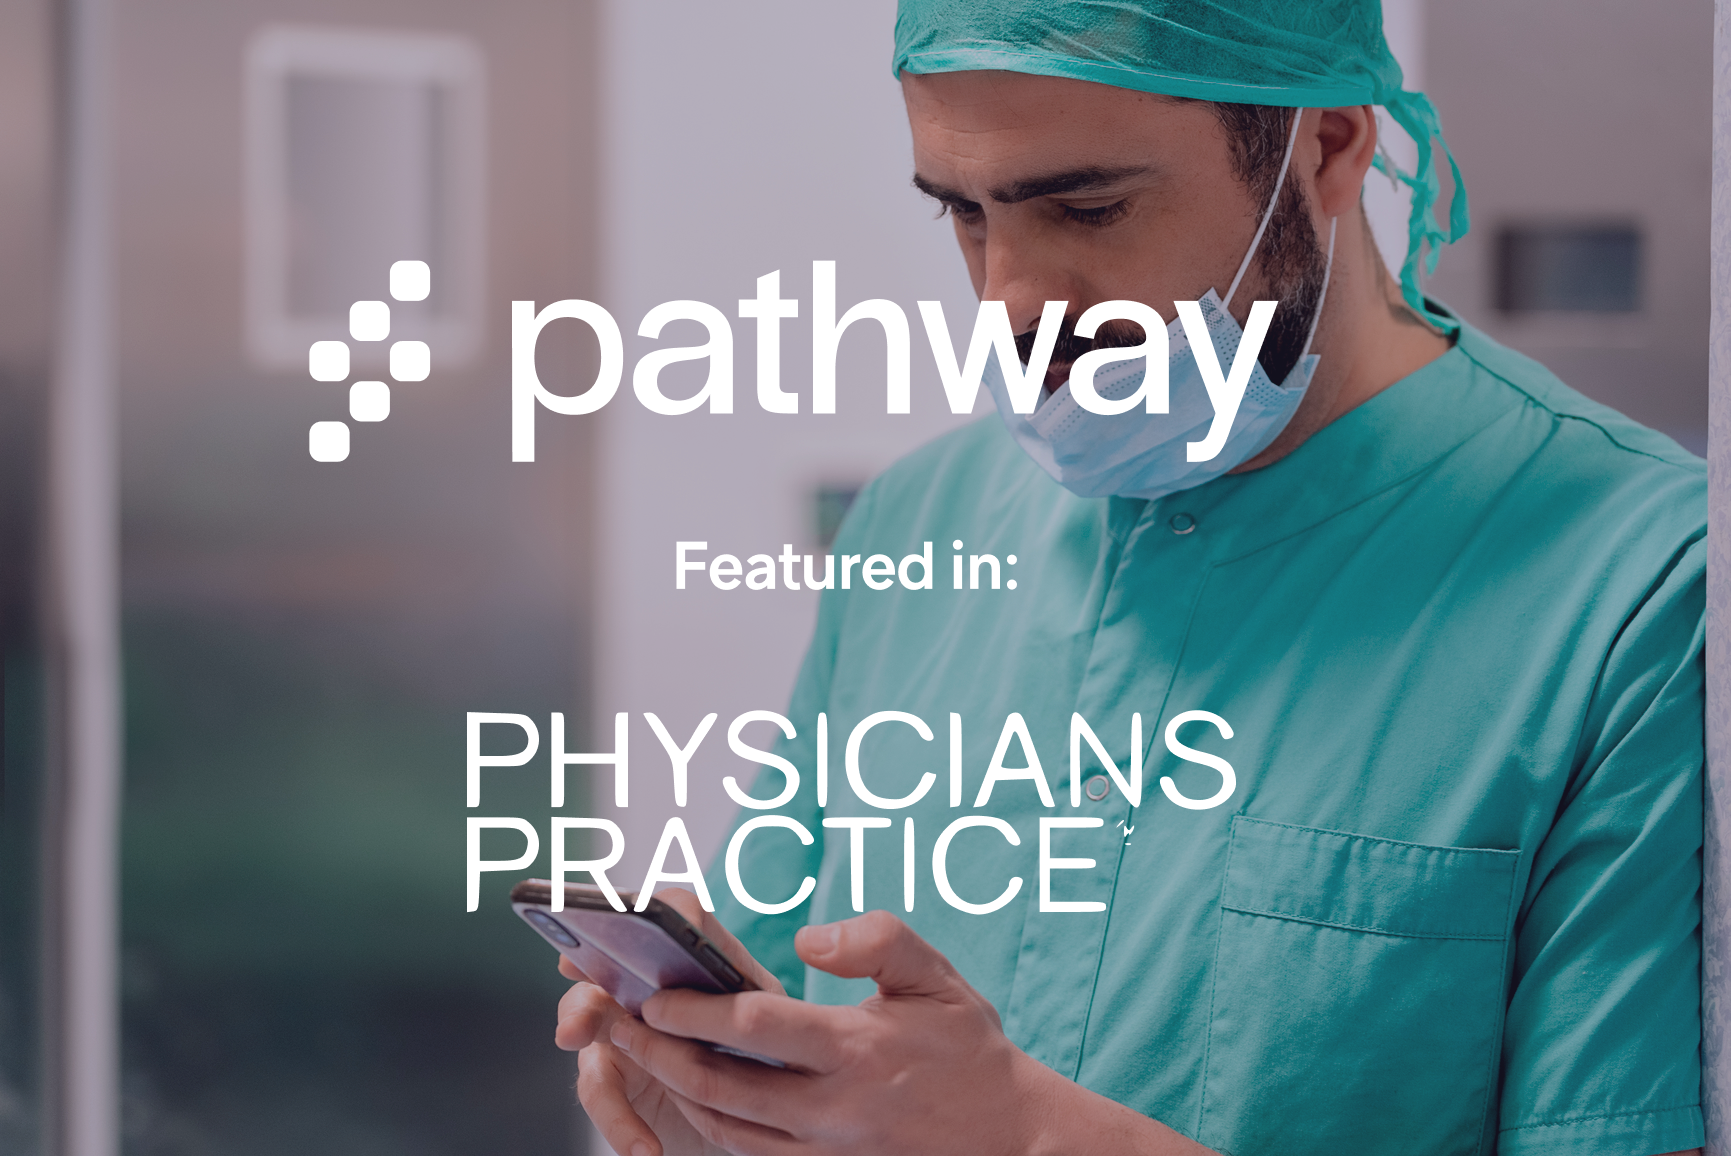 PhysiciansPractice discusses how Pathway provides physicians worldwide with easier access to high-yield evidence-based information.